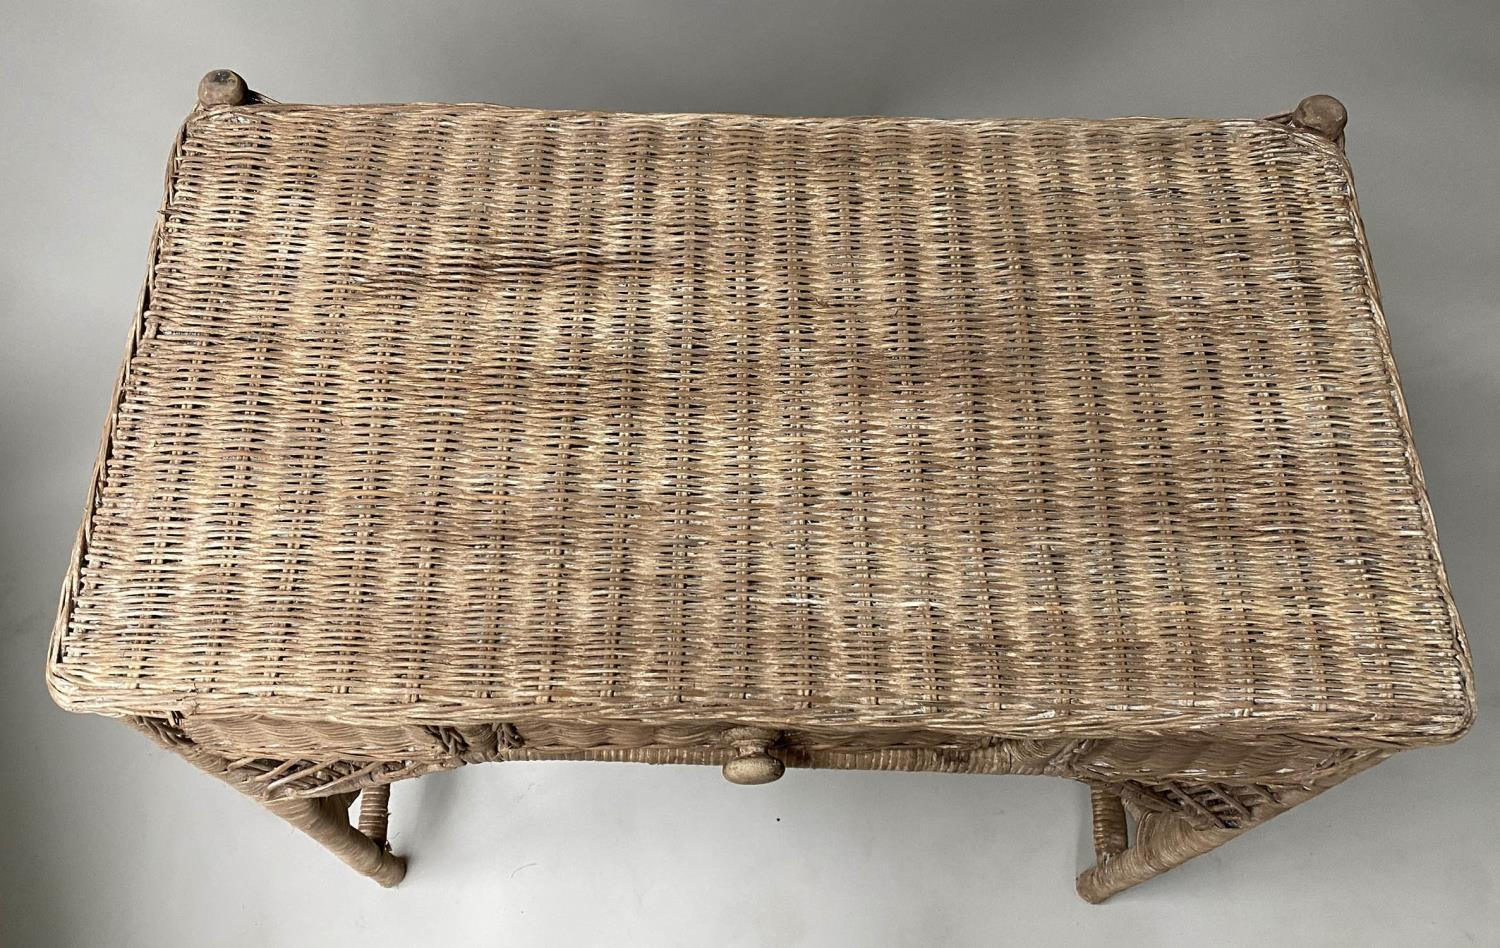 CONSOLE/HALL TABLE, vintage rattan and cane woven, with frieze drawer, 76cm W x 77cm x 42cm. - Image 6 of 7